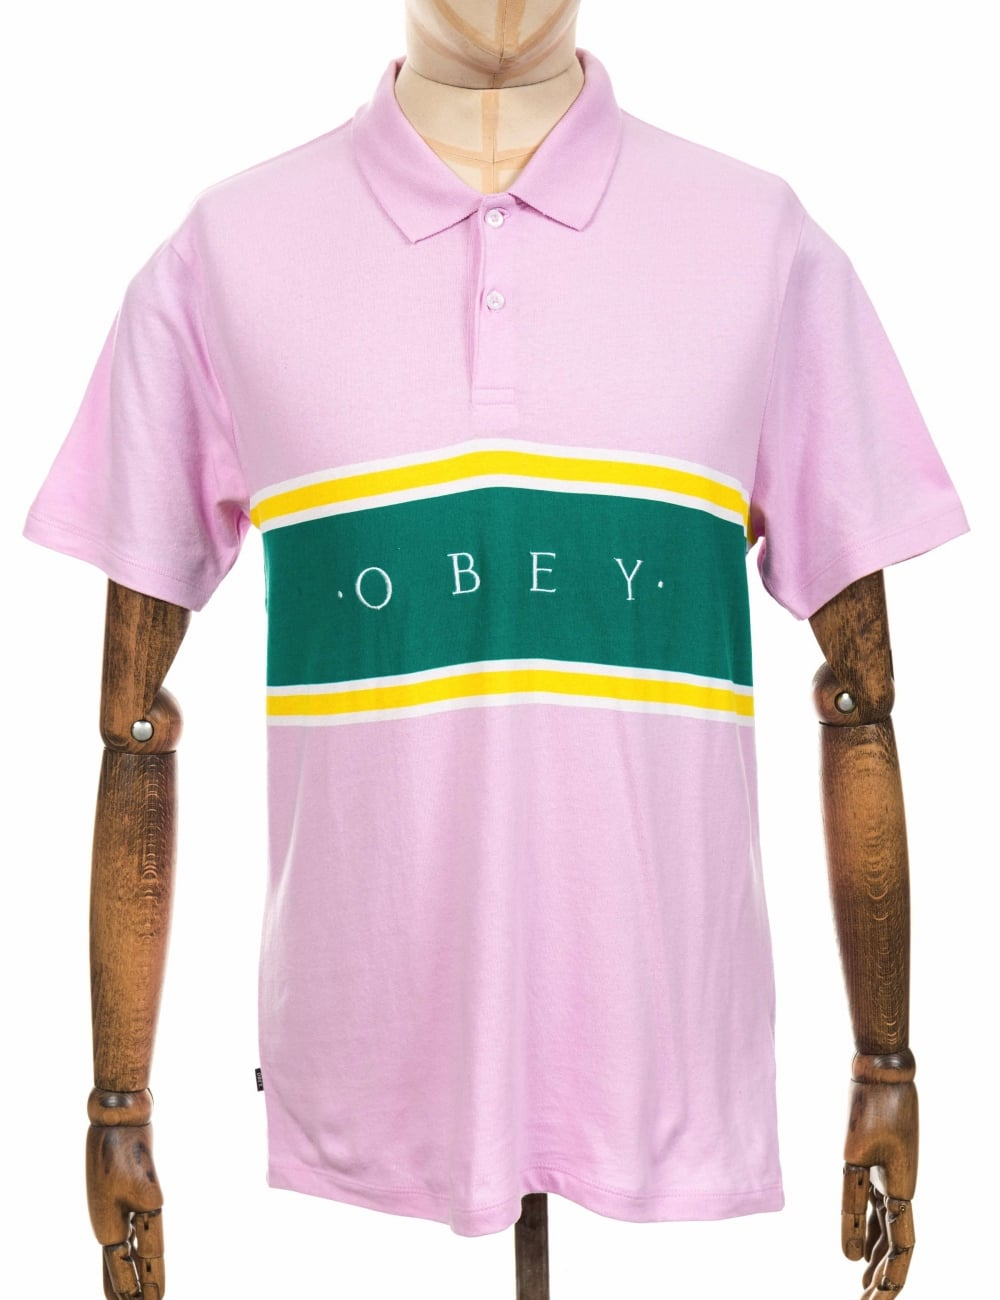 e799f478 Obey Clothing Palisade Polo Shirt - Pink - Clothing from Fat Buddha ...